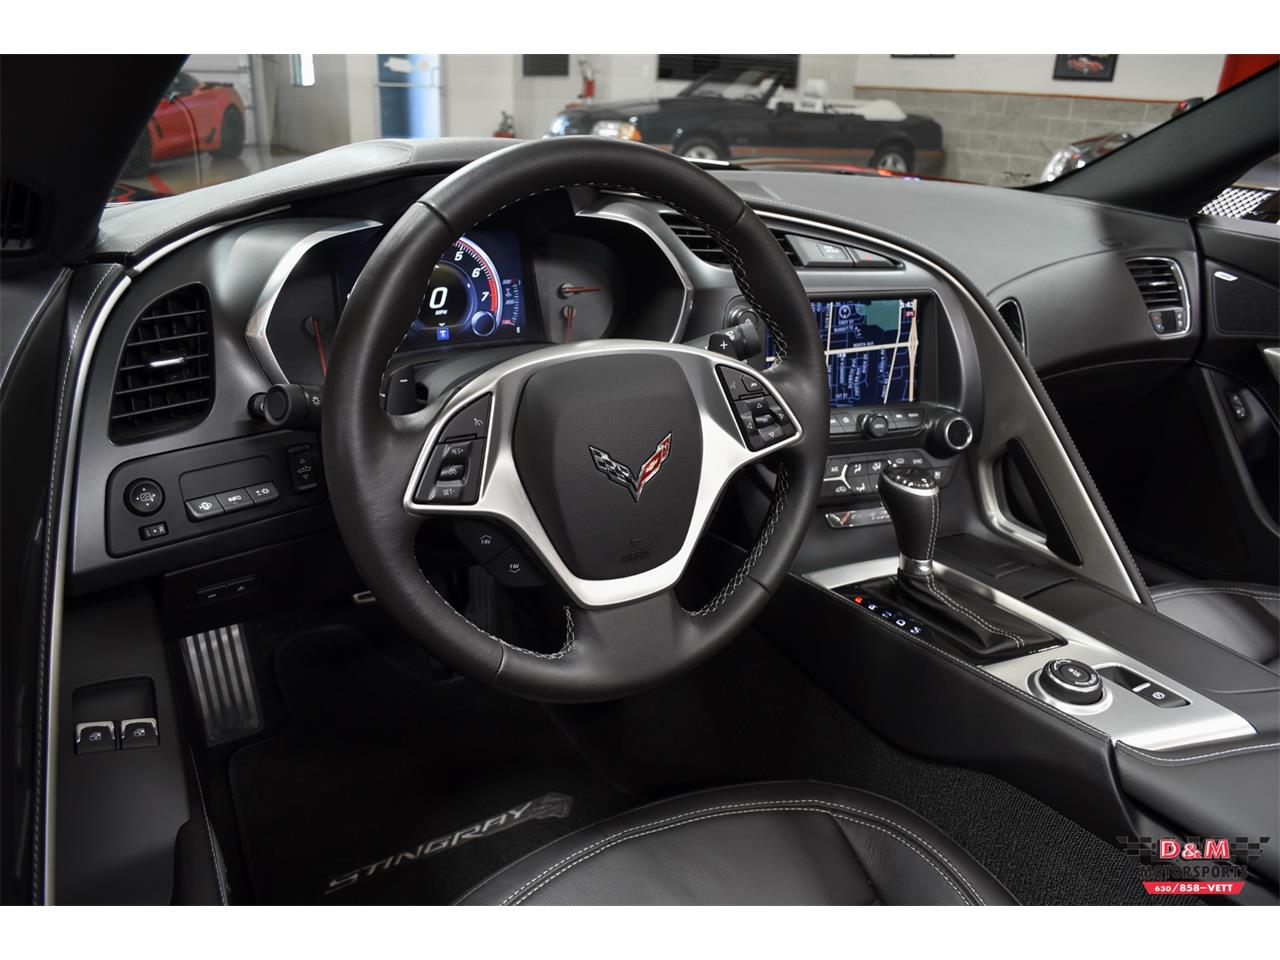 Large Picture of 2015 Chevrolet Corvette located in Glen Ellyn Illinois - $50,995.00 - PZ21